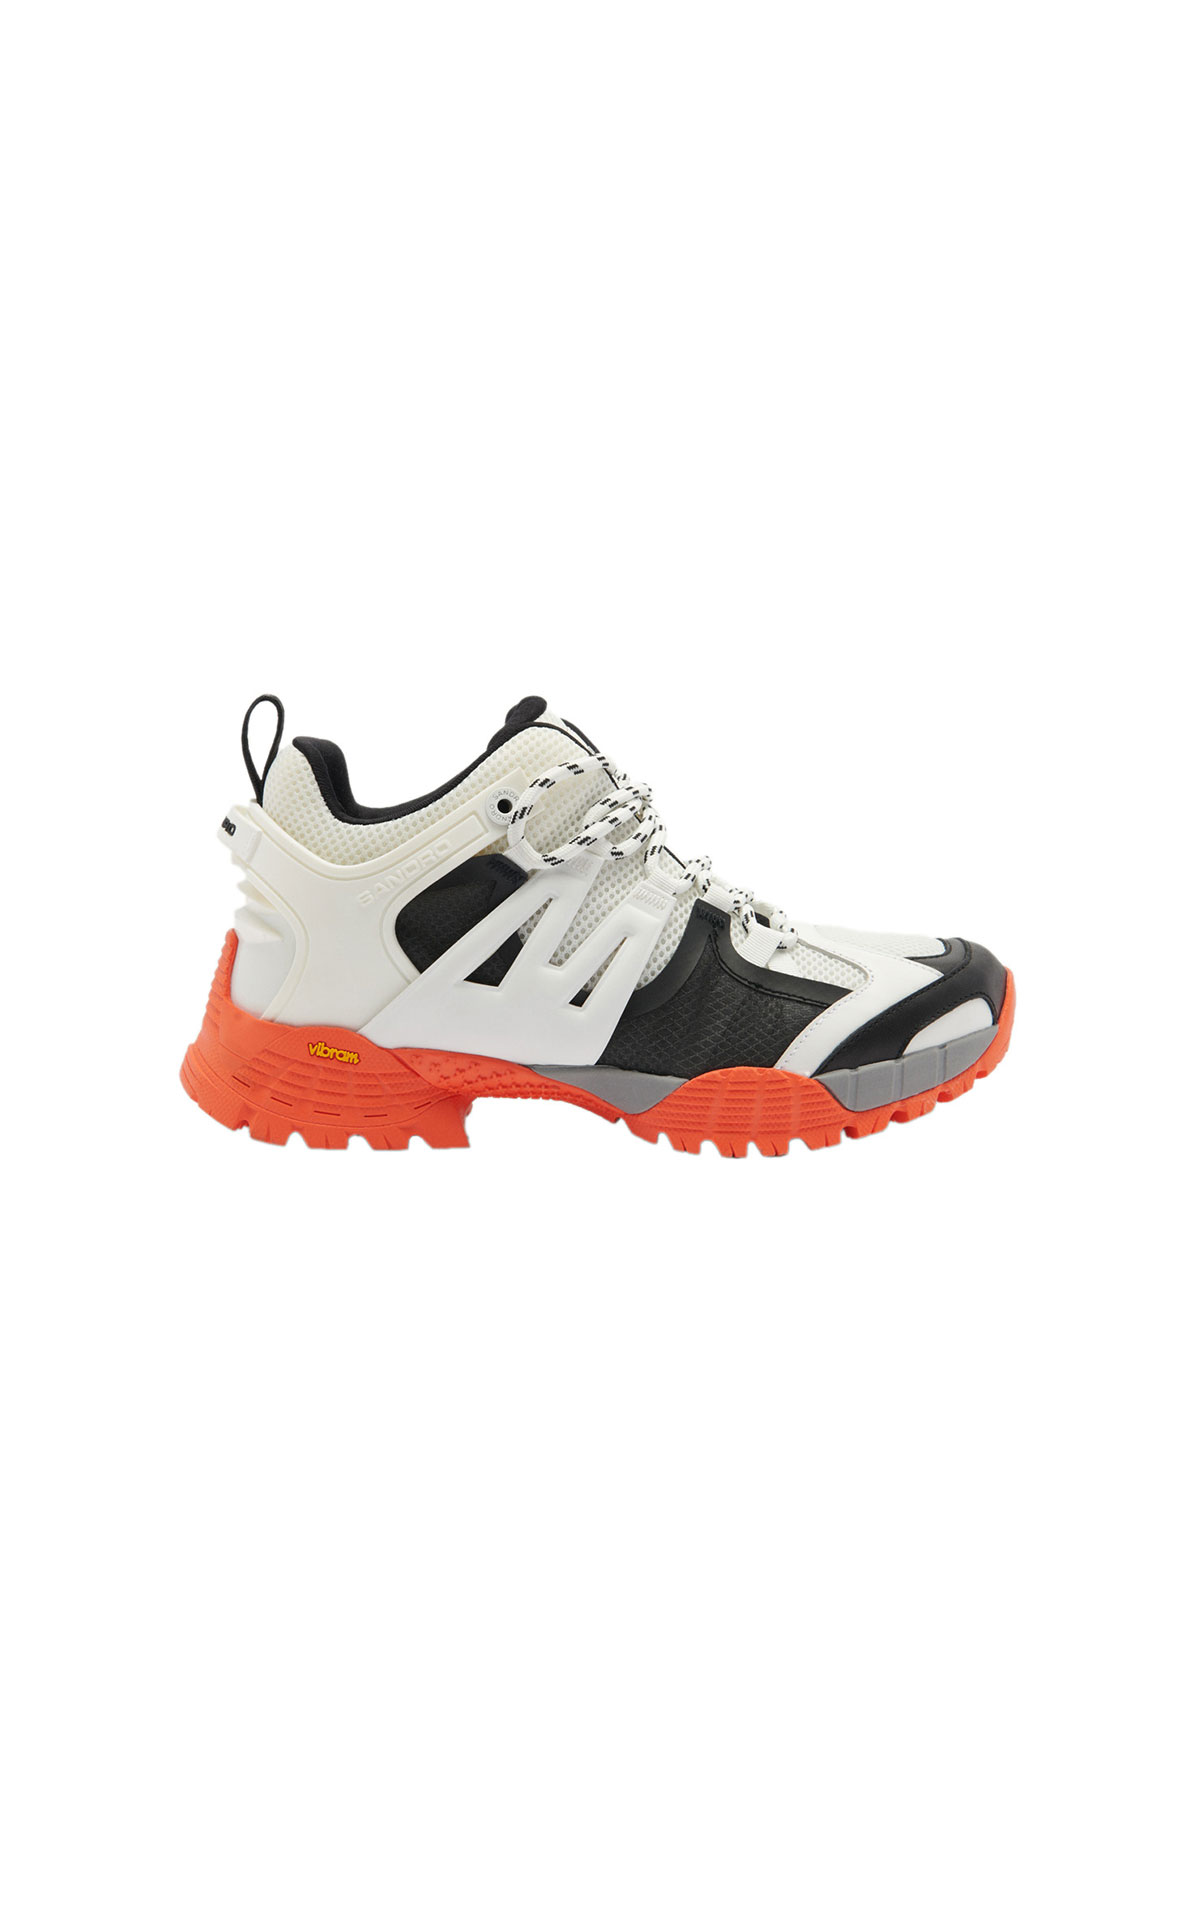 Sandro Men's trainers at The Bicester Village Shopping Collection